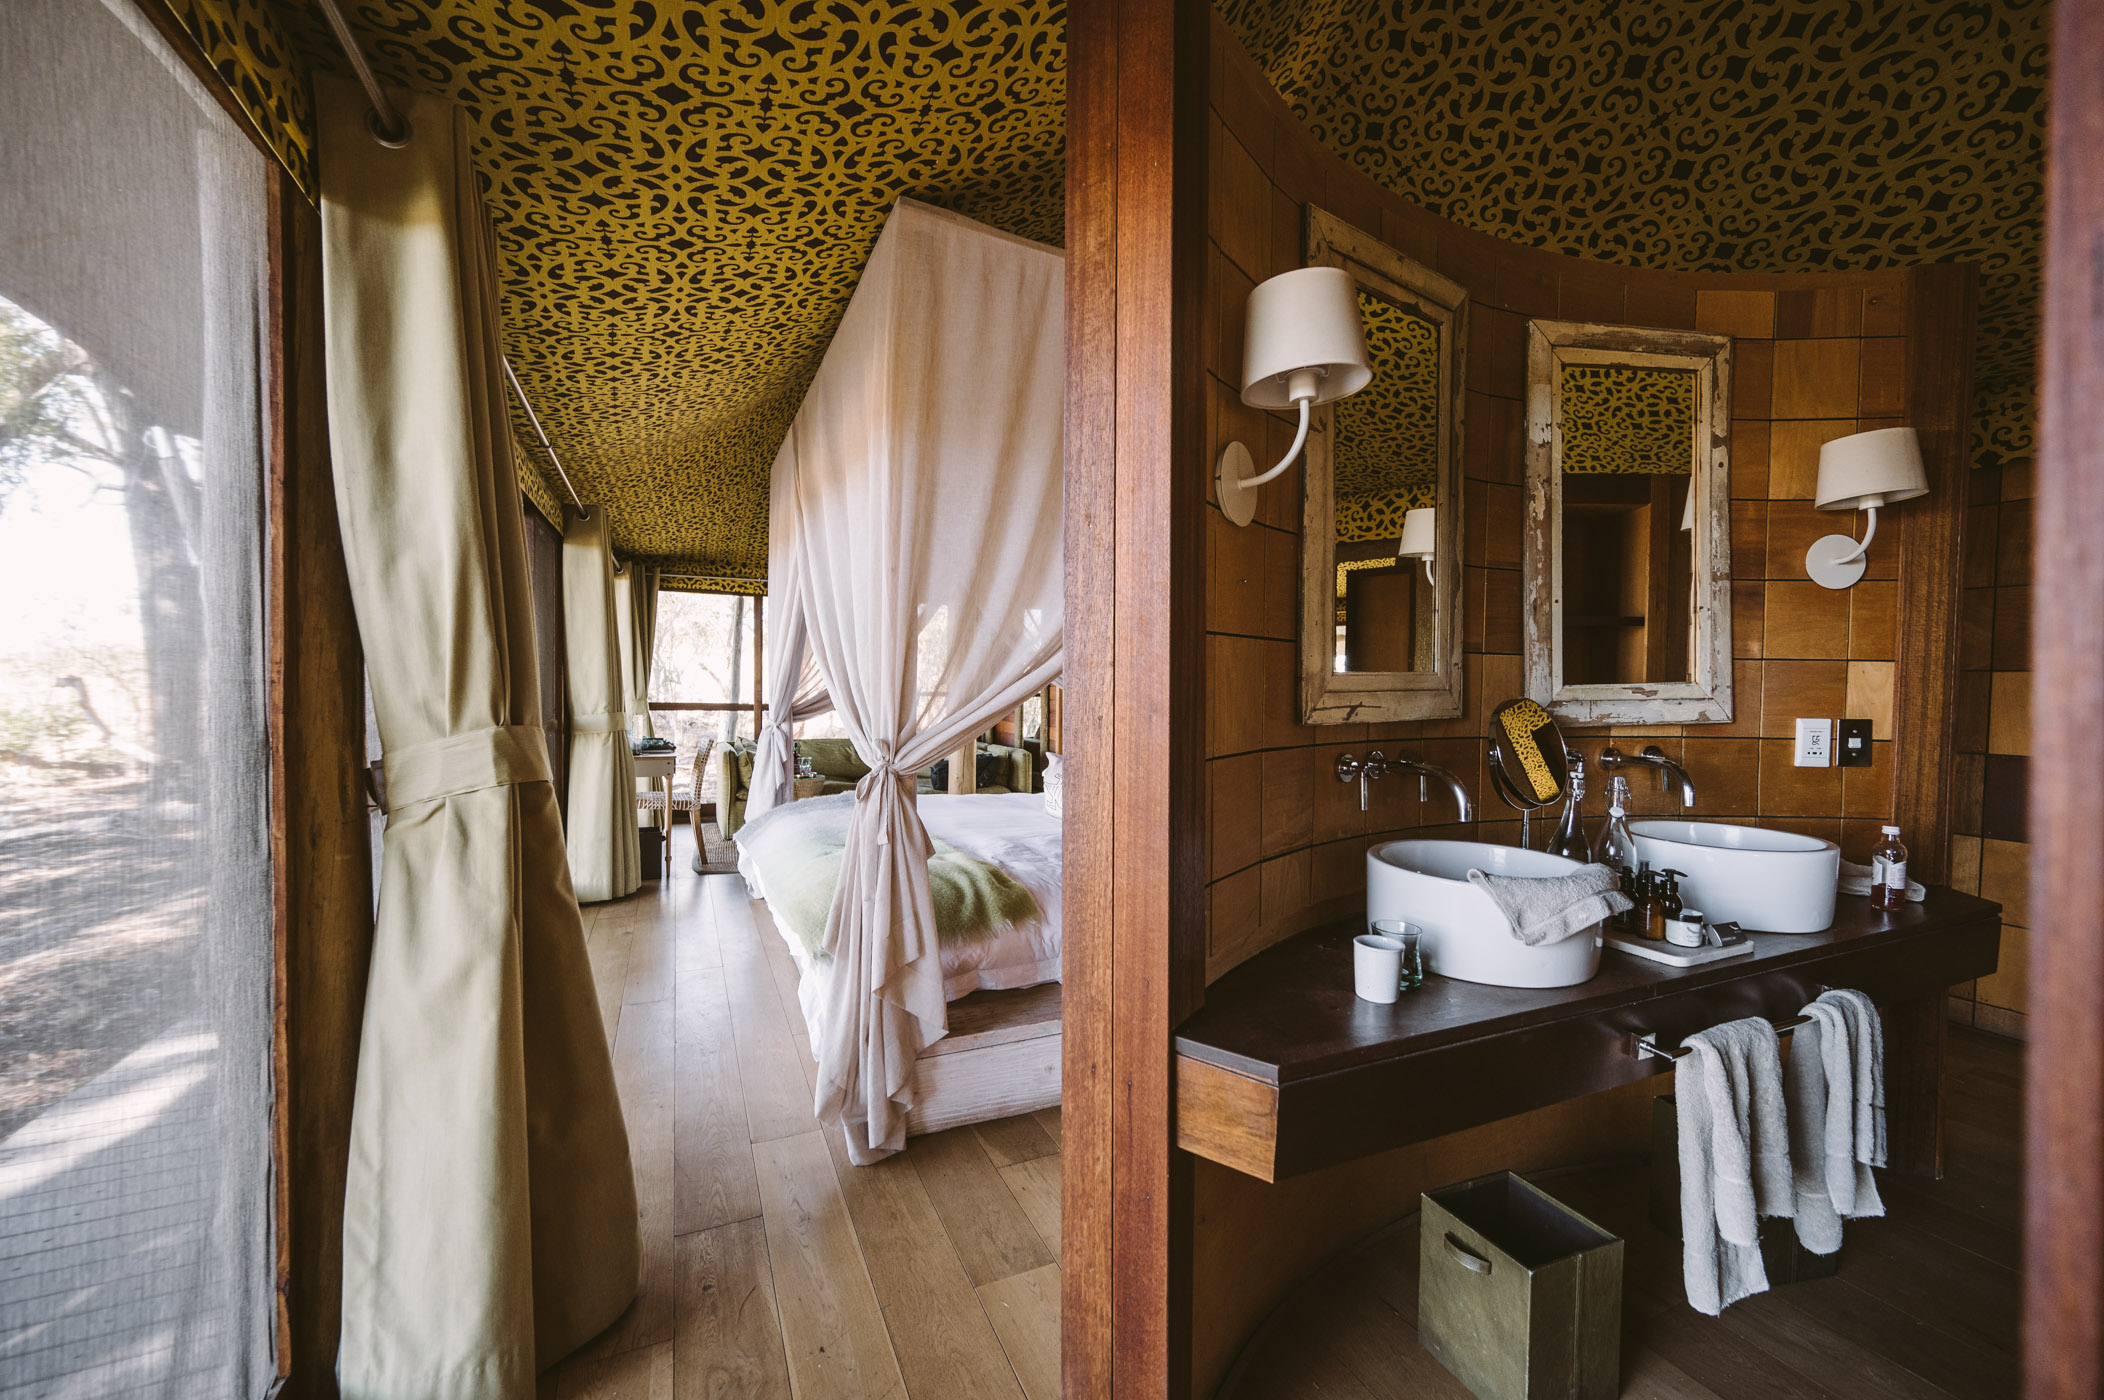 andBeyond Xaranna Okavango Delta Camp bedroom and bathroom